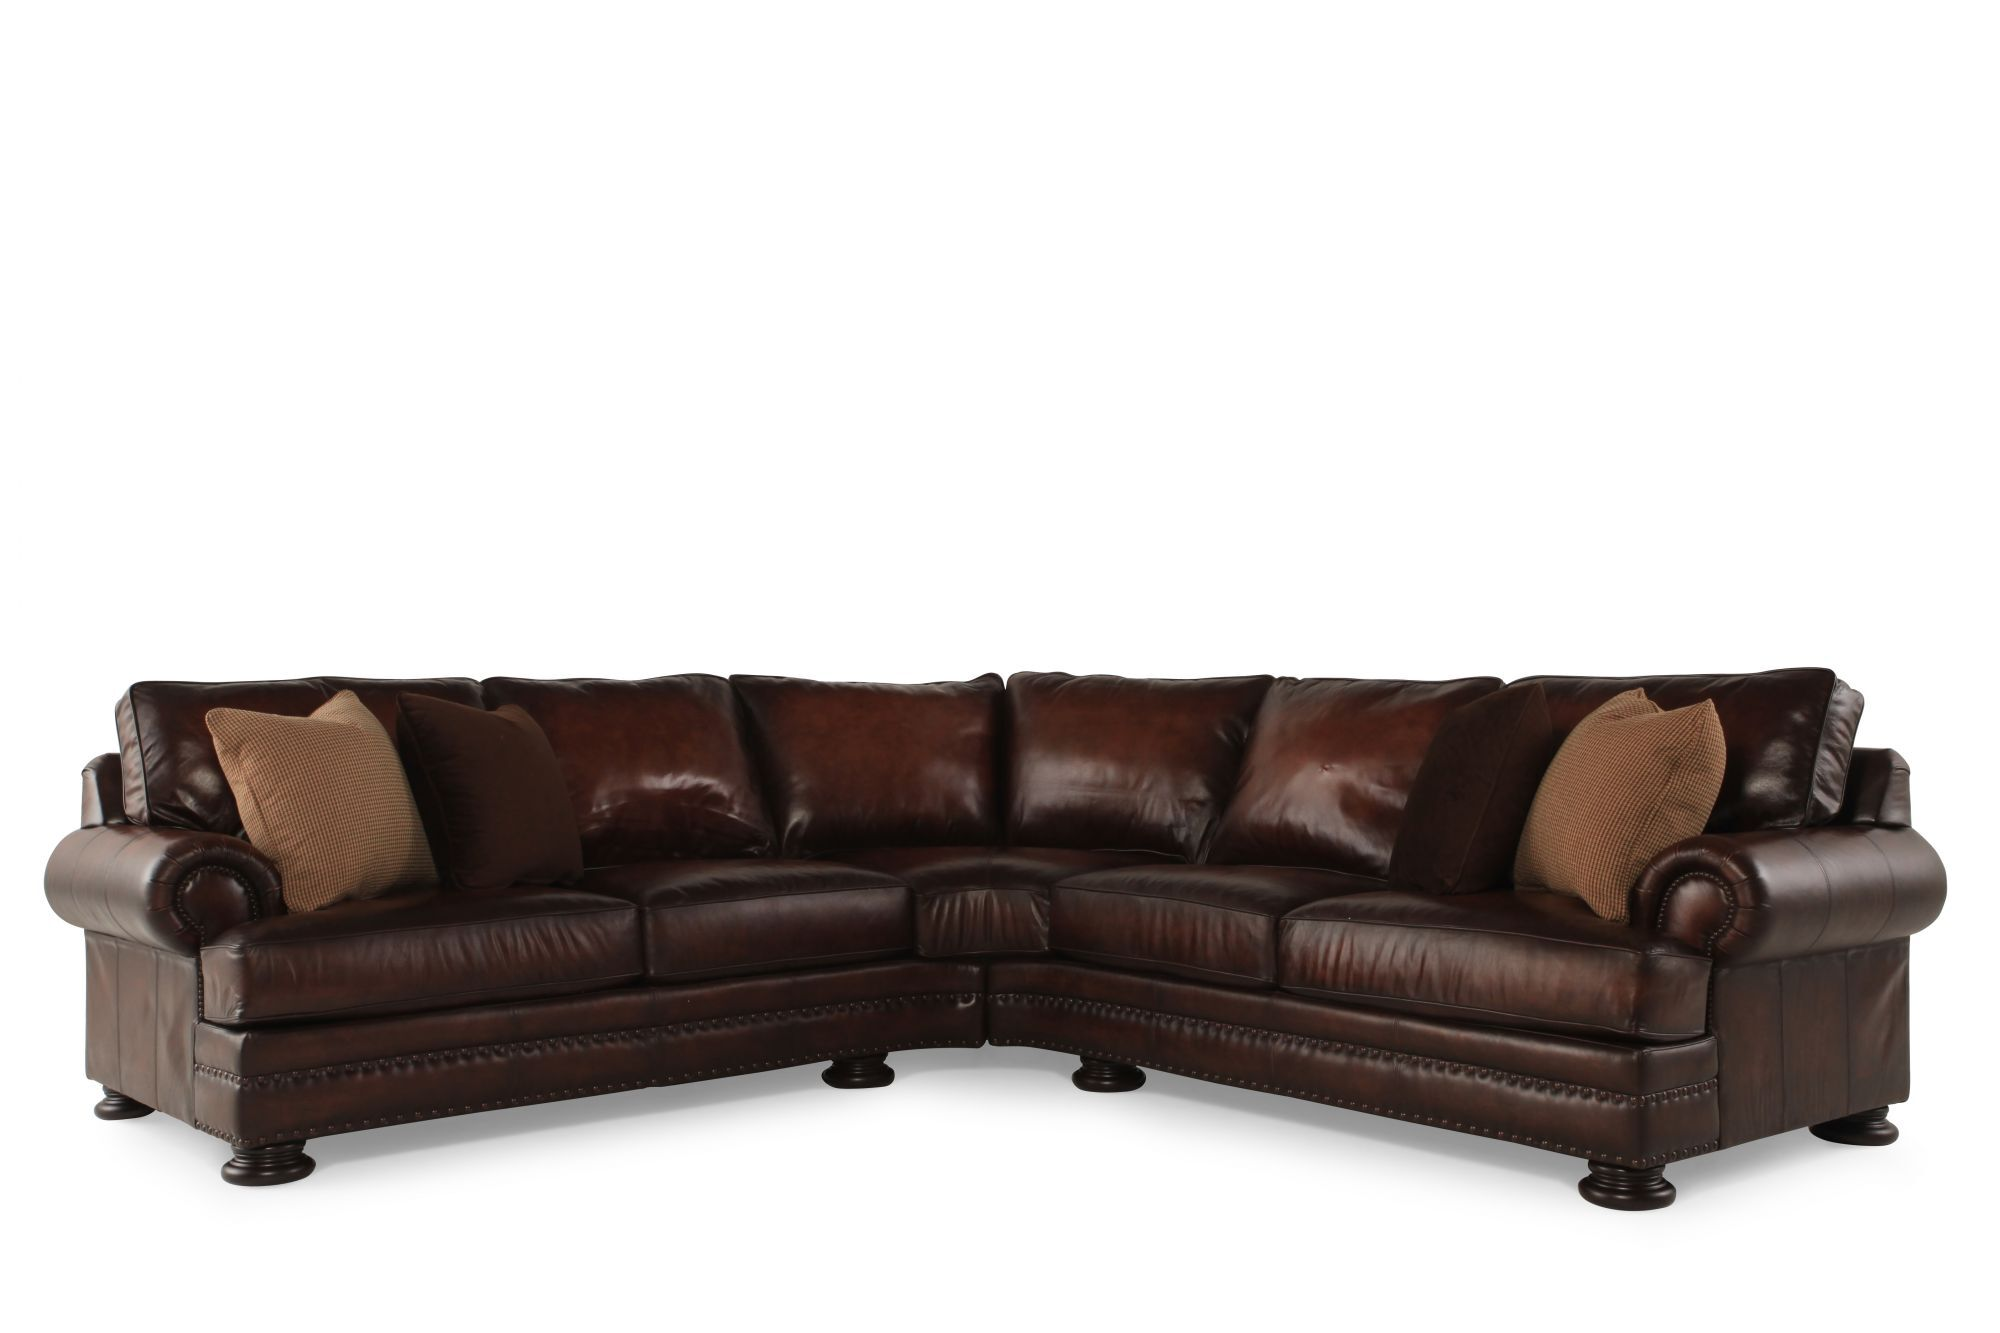 leather club chairs nebraska furniture mart chair covers material bernhardt foster sectional mathis brothers